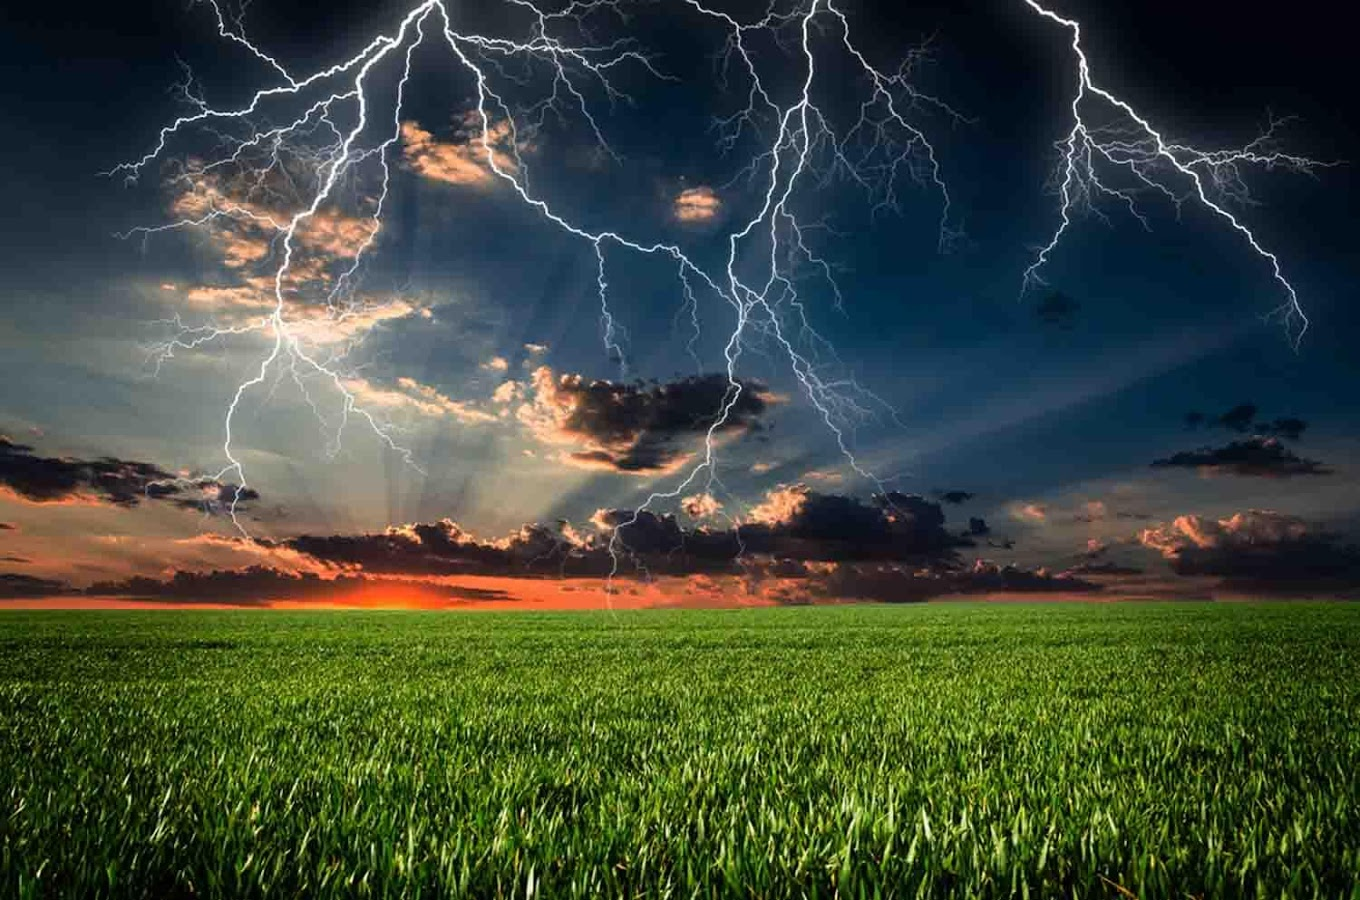 Thunderstorm Wallpapers Thunderstorm Wallpapers 1360x900